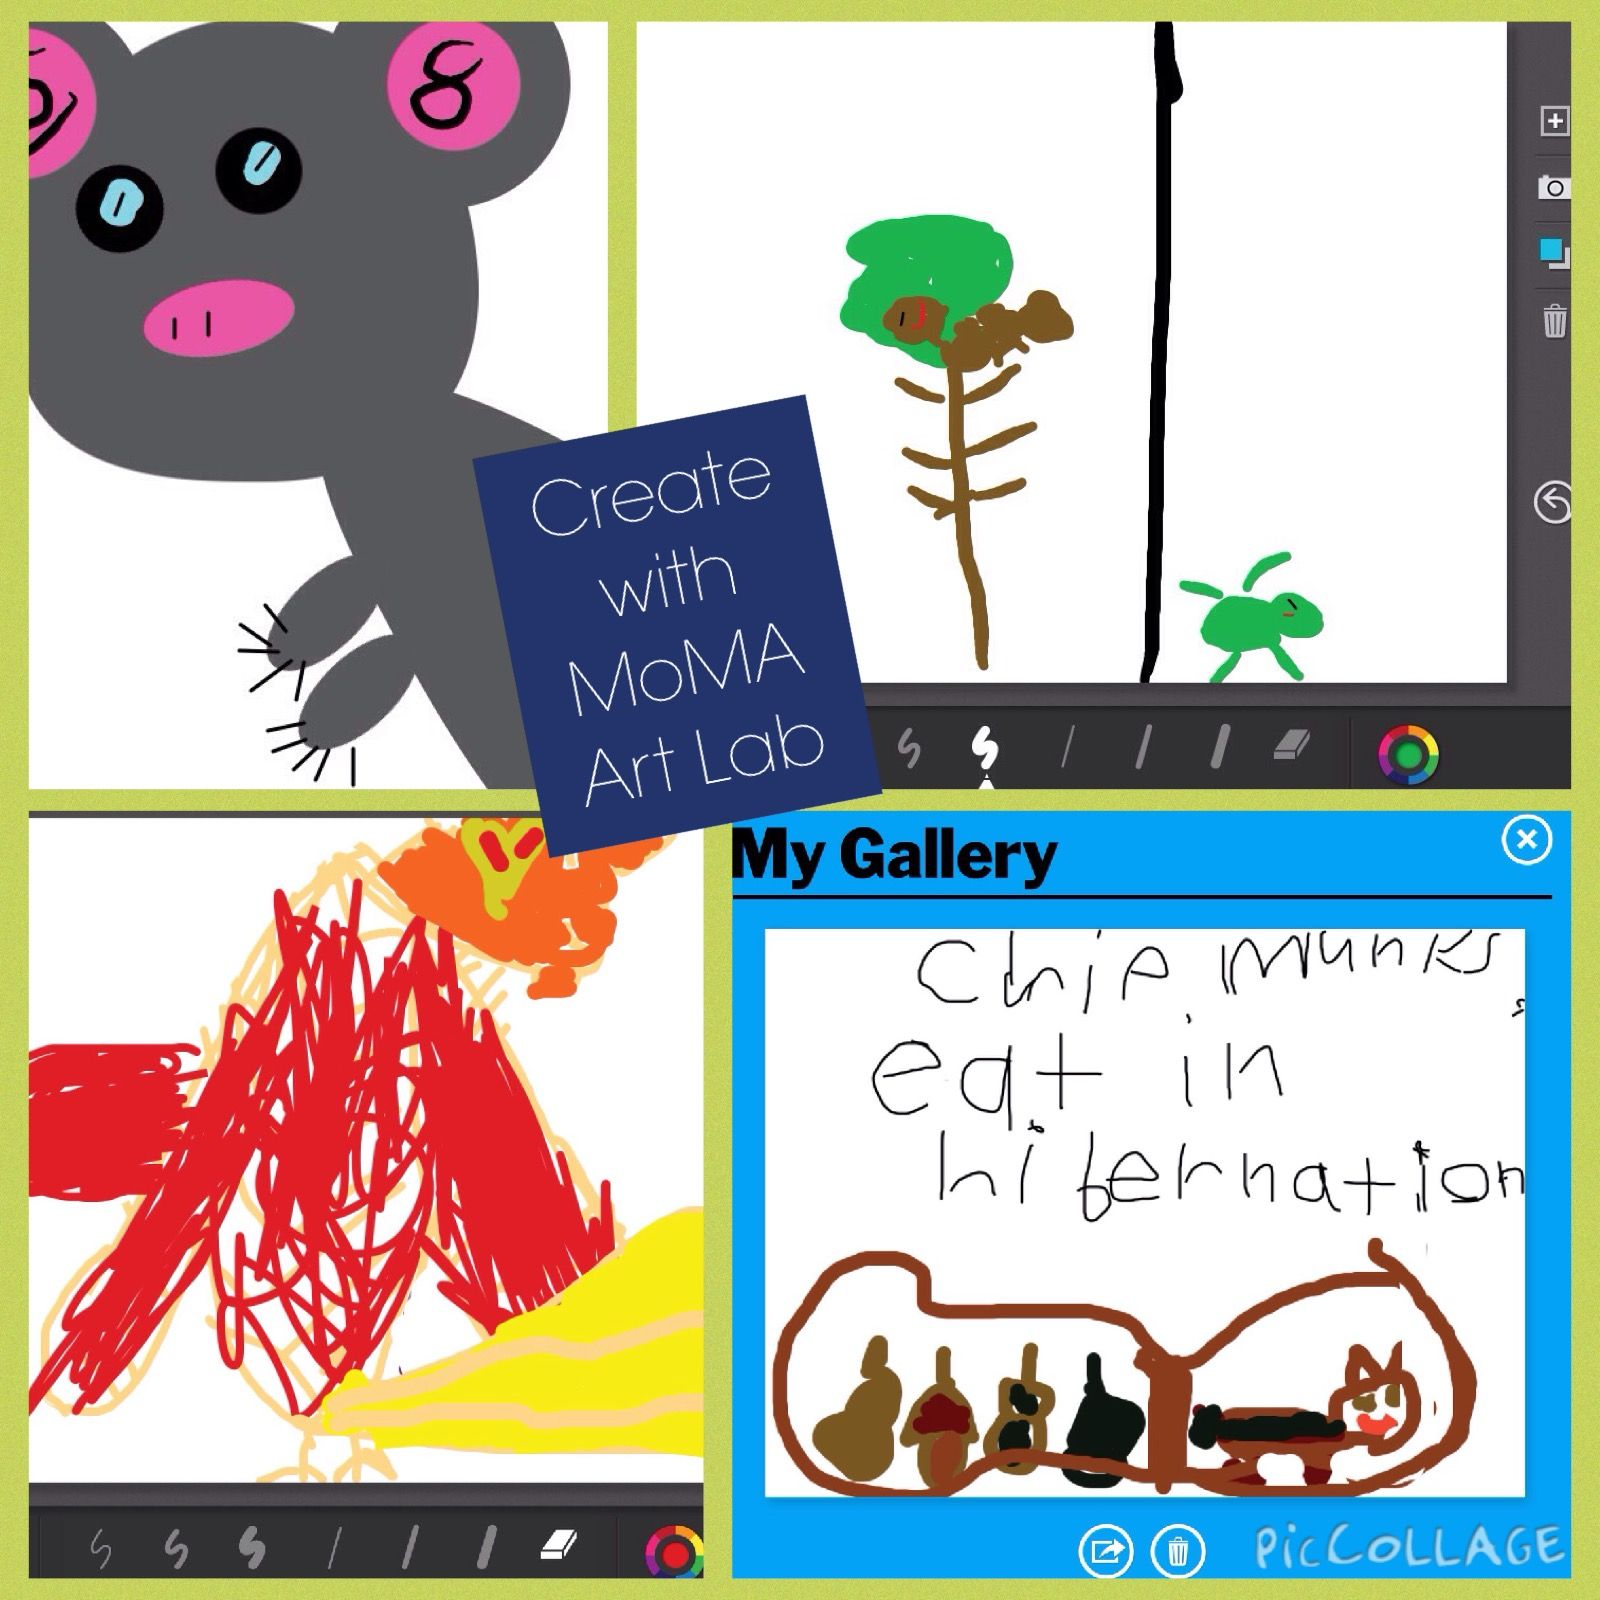 Let The Moma Art Lab App Get Your Creative Juices